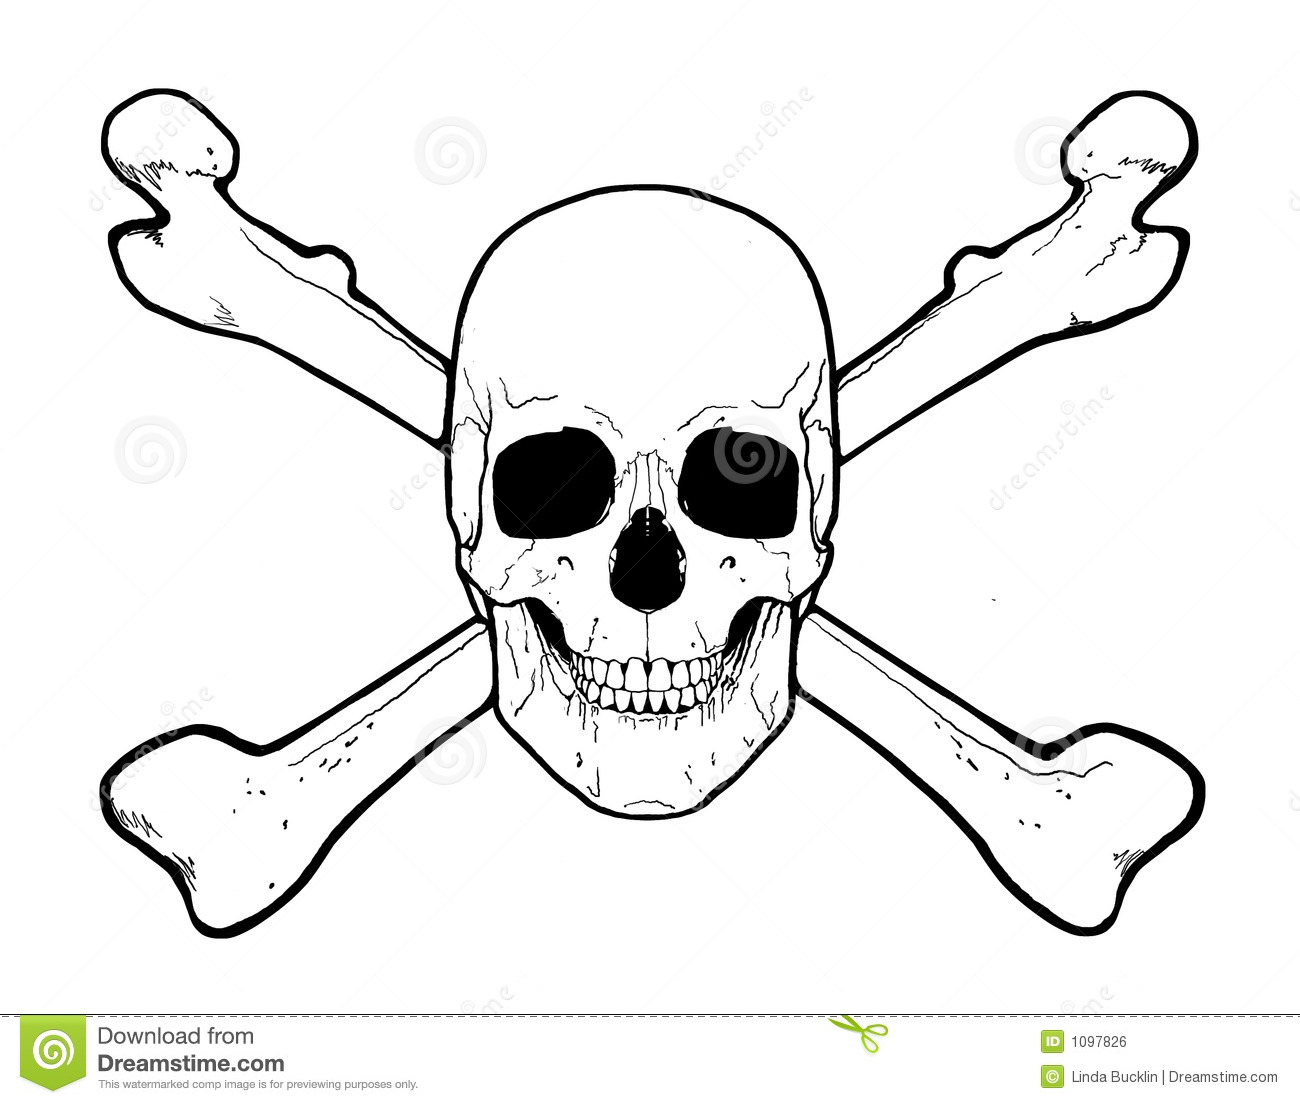 skull and crossbones coloring page - skull and crossbones stock vector image of toxin toxic